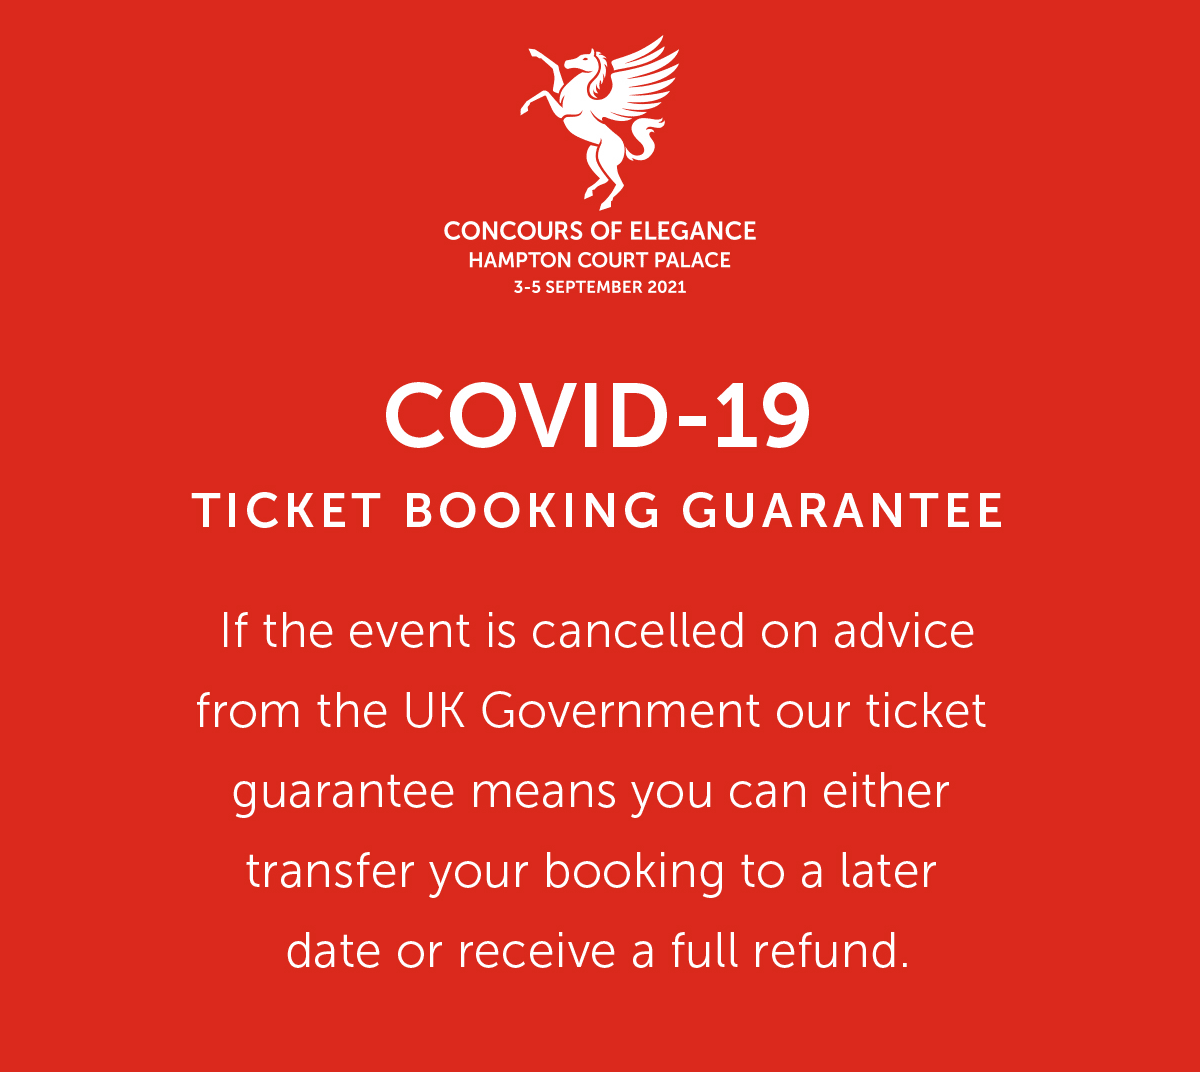 COVID-19 TICKET BOOKING GUARANTEE If the event is cancelled on advice from the UK Government our ticket guarantee means you can either transfer your booking to a later date or receive a full refund.